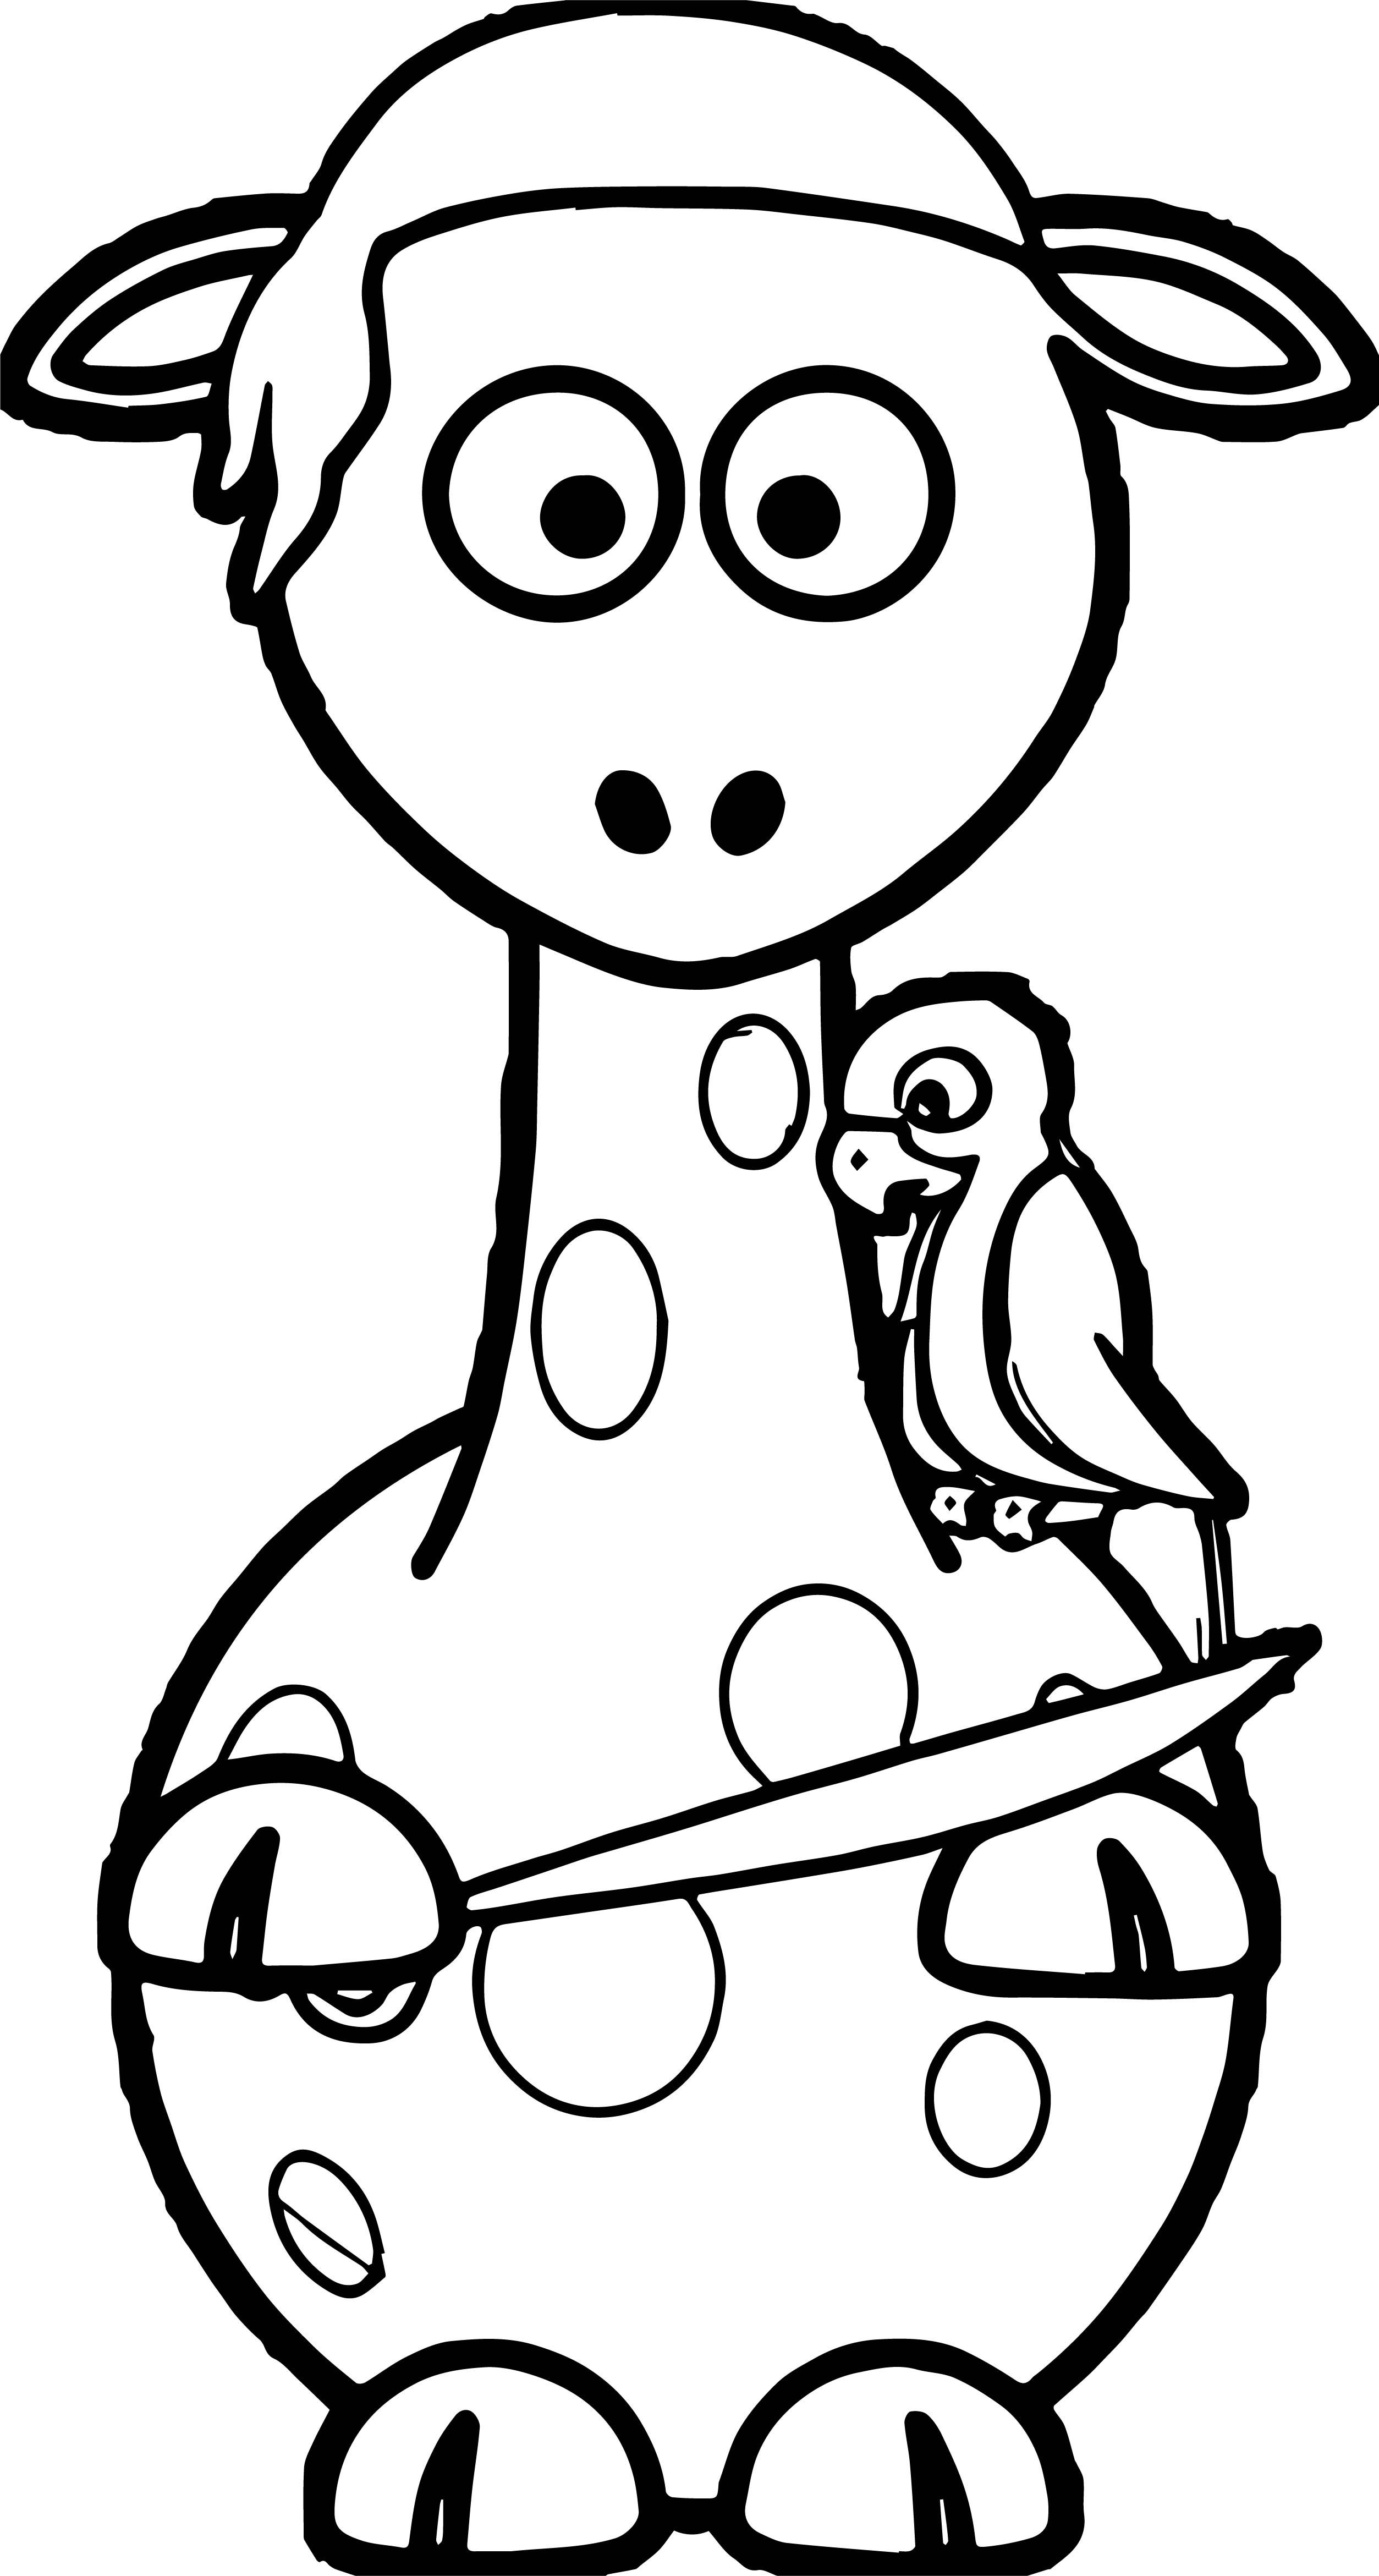 cool Giraffe Pirate And Parrot Coloring Page | wecoloringpage ...